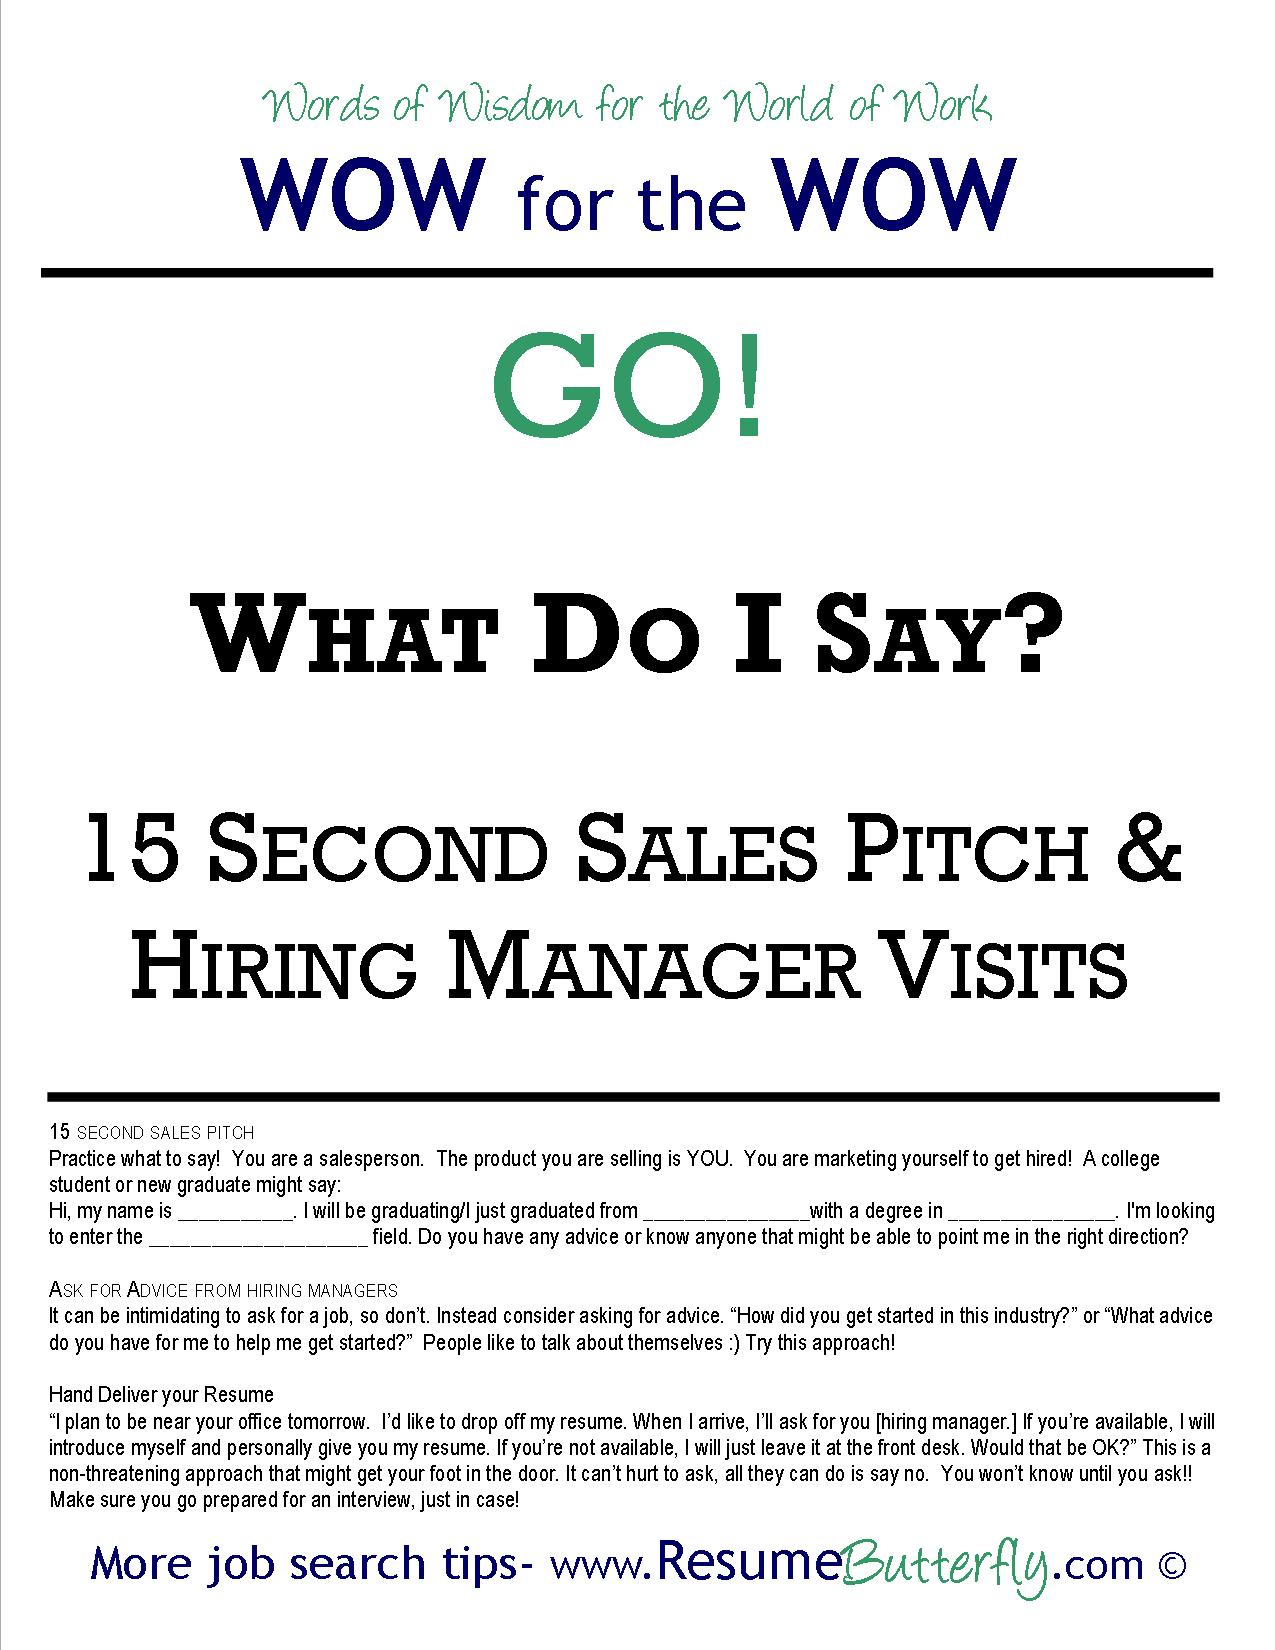 Resume Service Wow For The Wow Job Search Skills Resume Butterfly Go 15